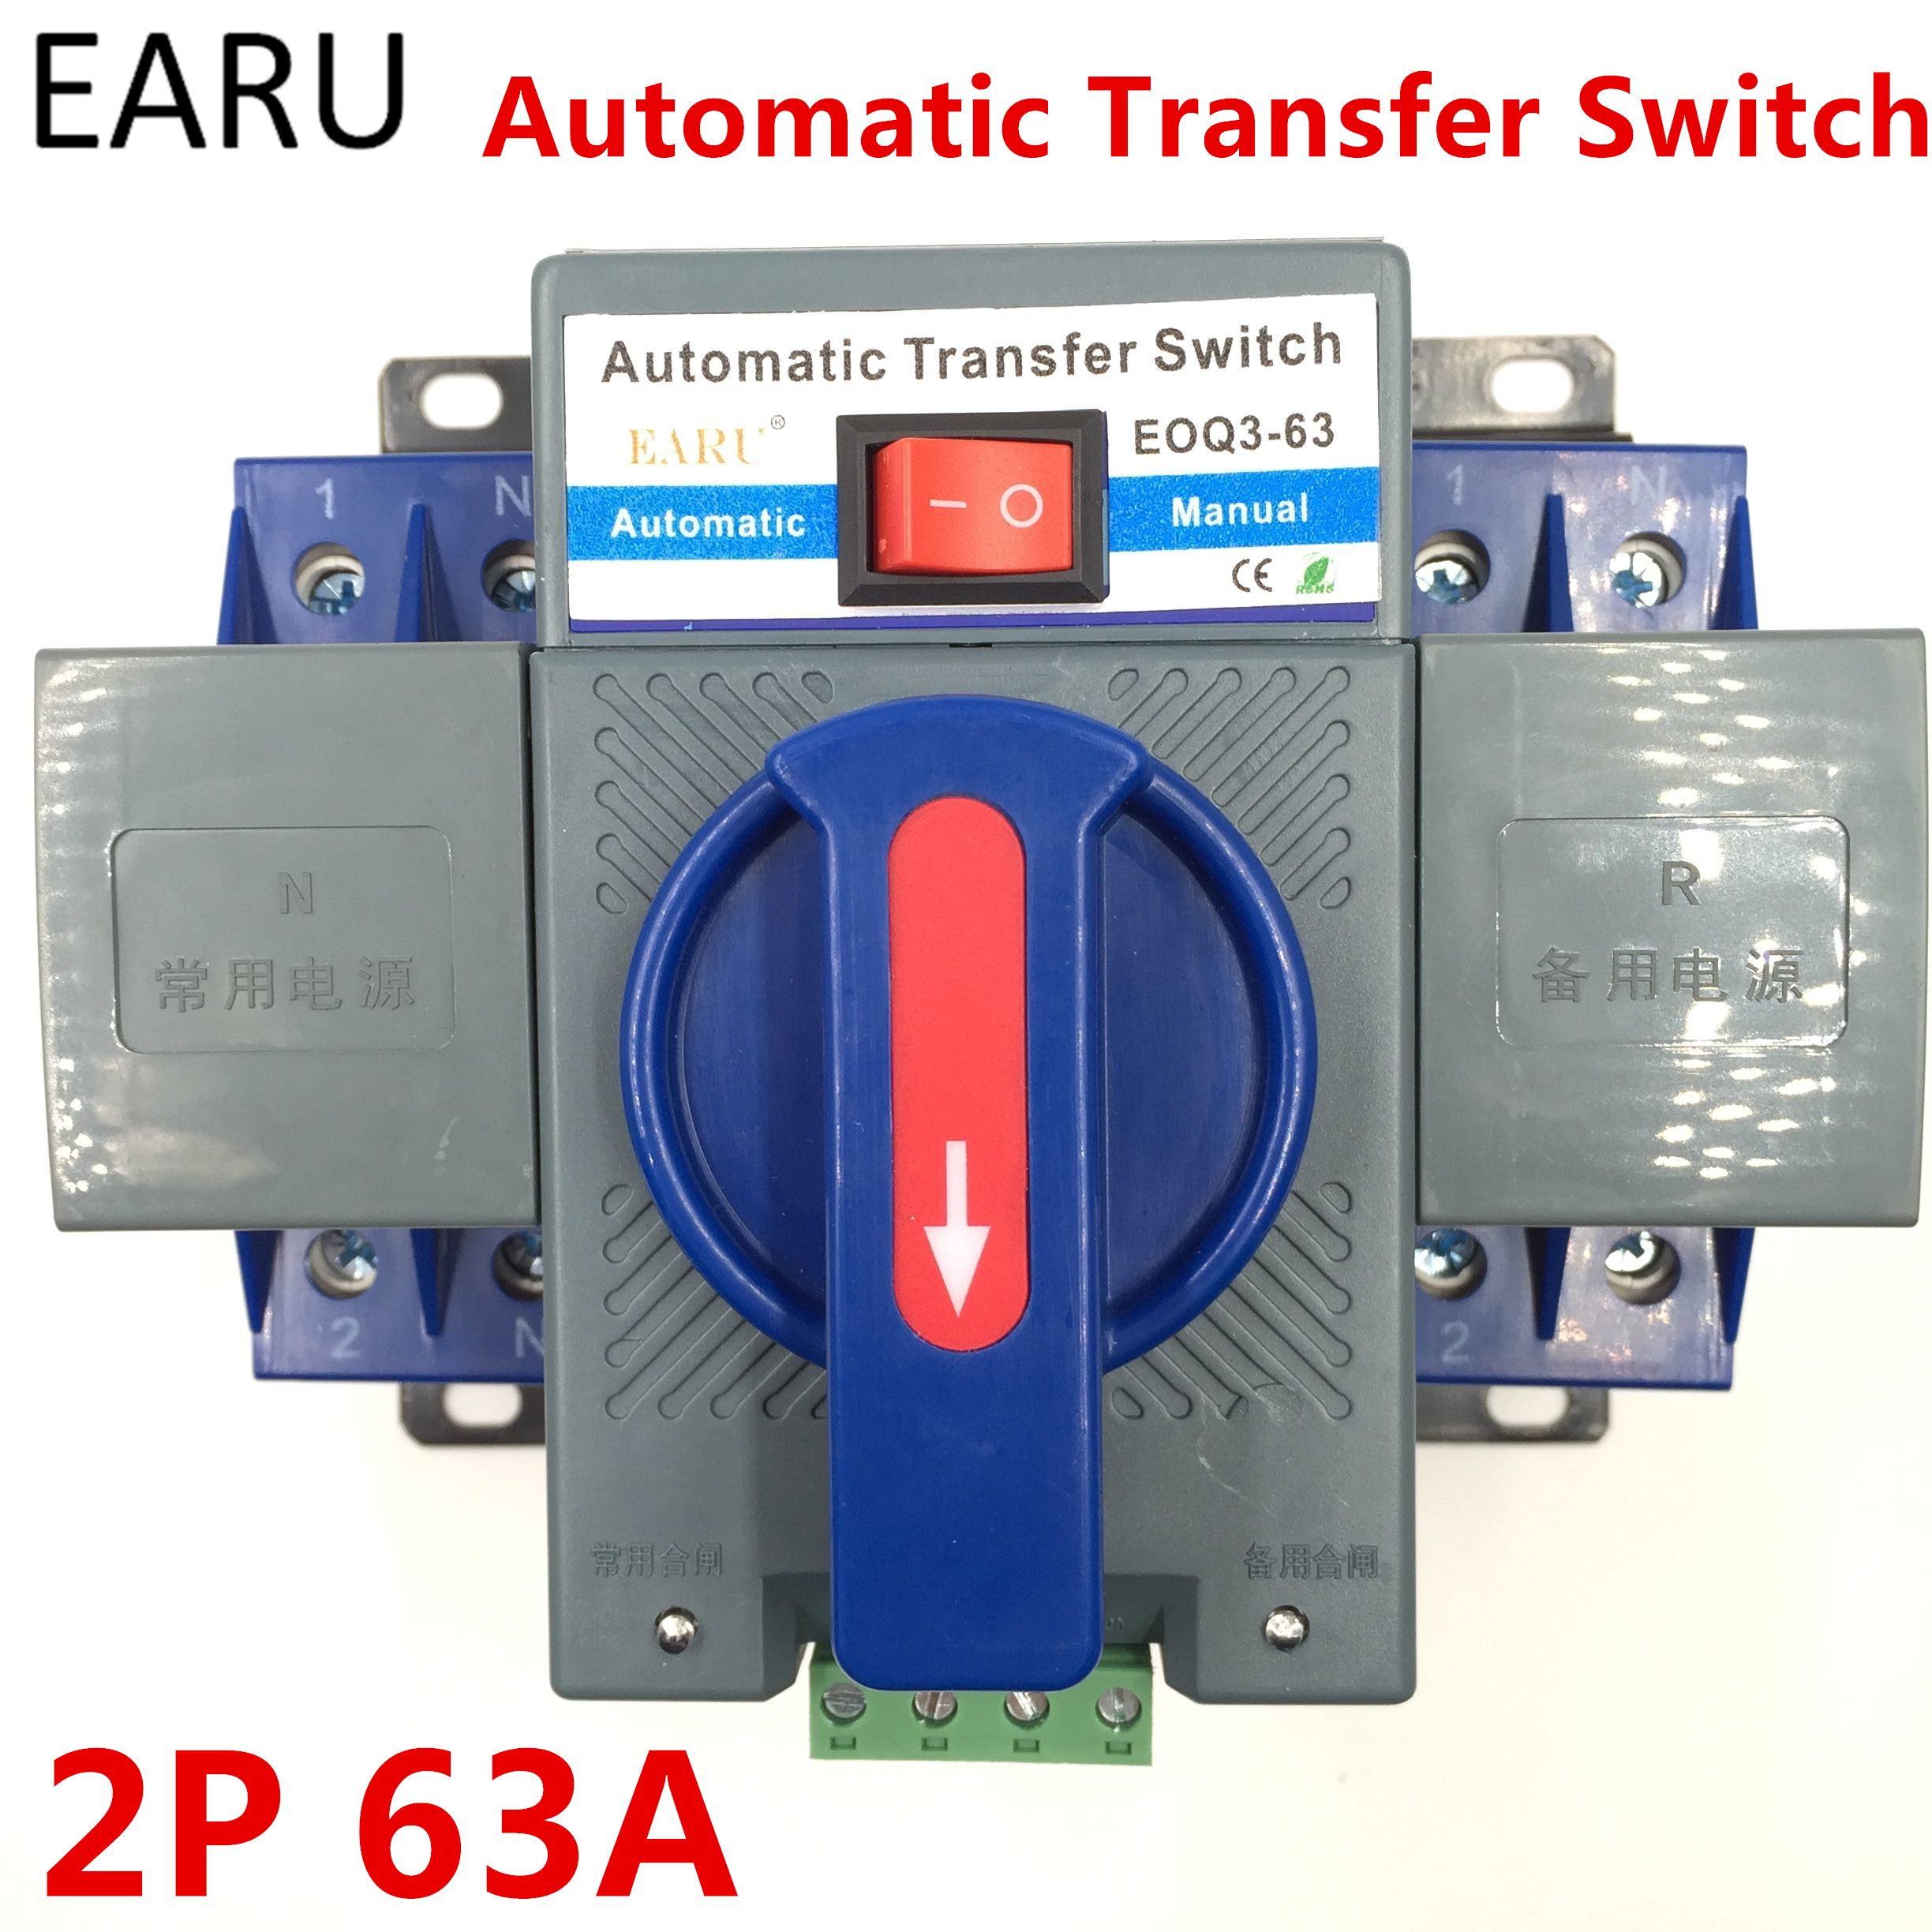 230v 1 Phase Wiring Diagram Free Picture 2p 63a 230v Mcb Type Dual Power Automatic Transfer Switch